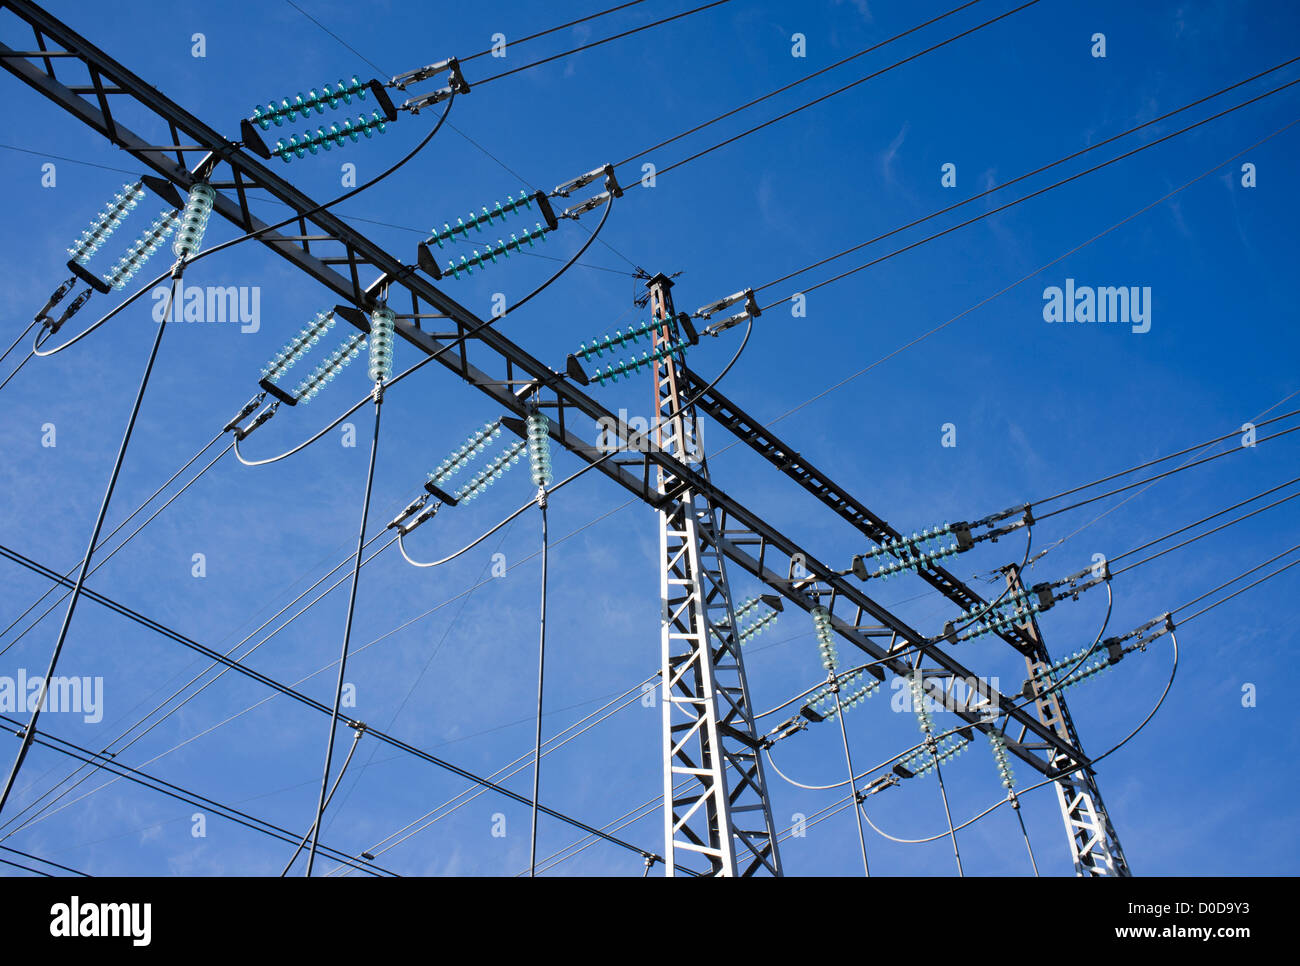 High-voltage power lines with insulators against blue sky - Stock Image